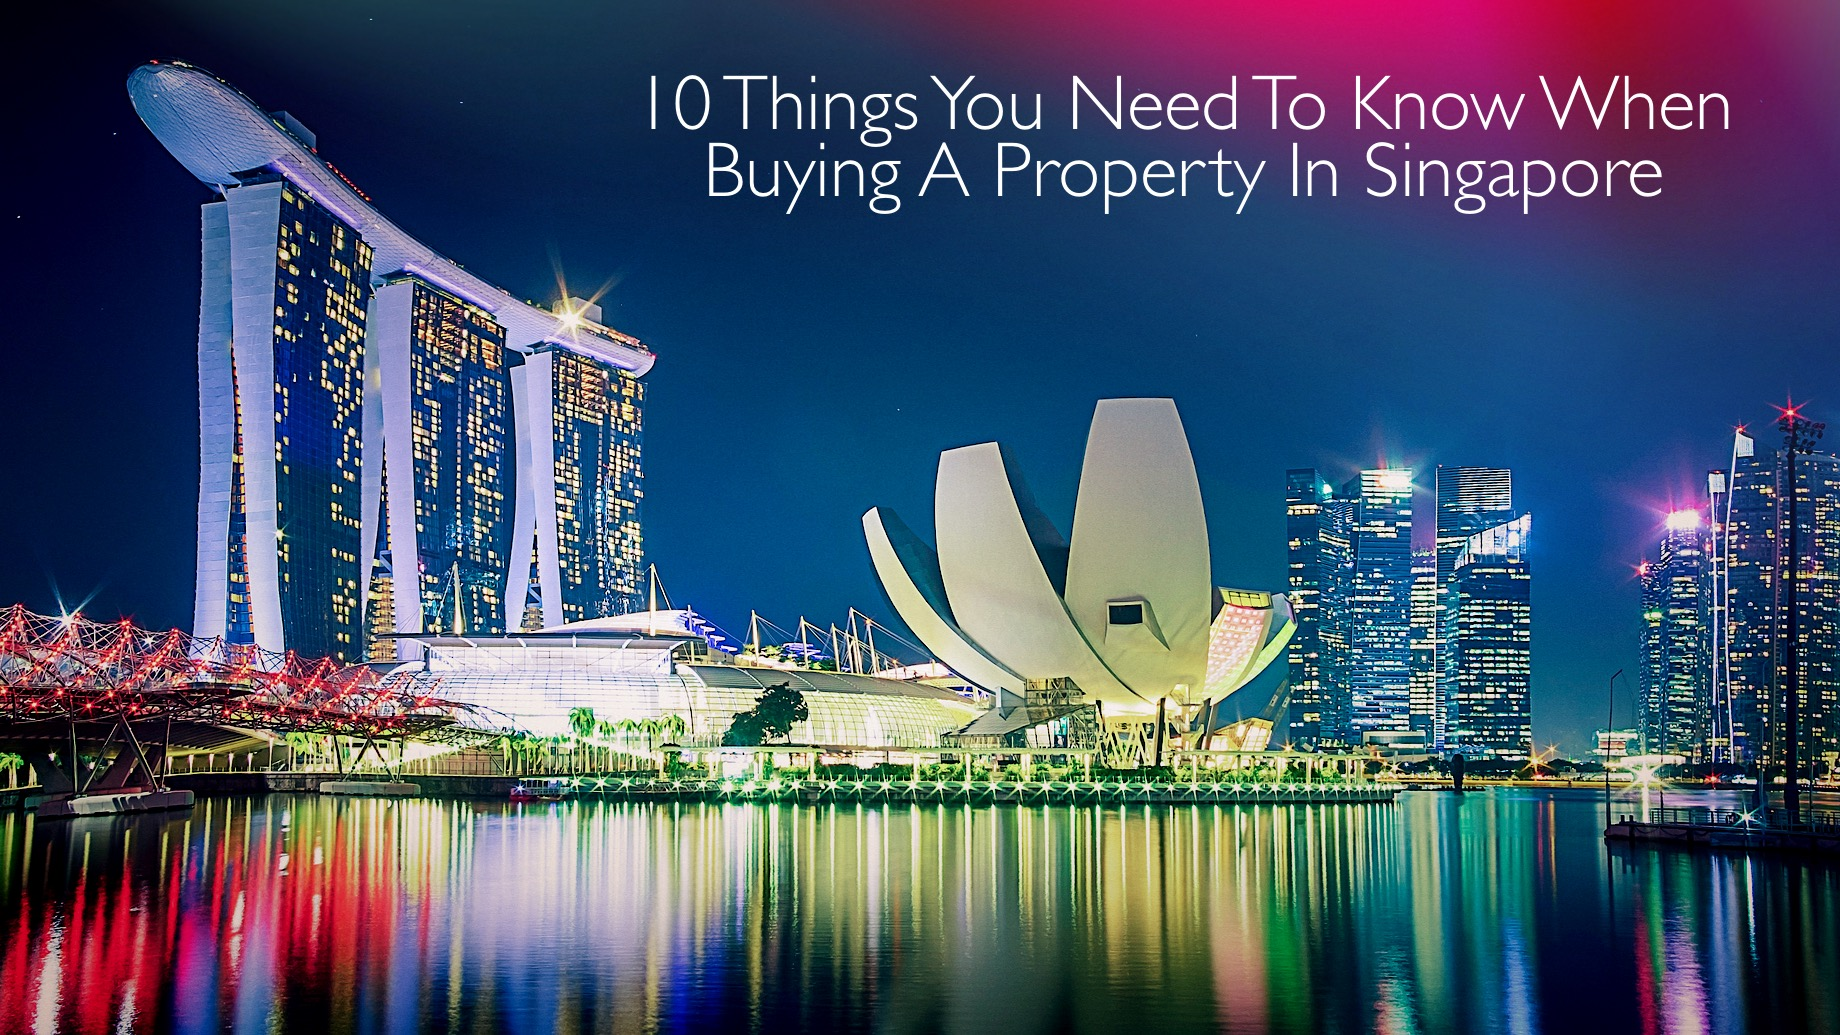 10 Things You Need To Know When Buying A Property In Singapore